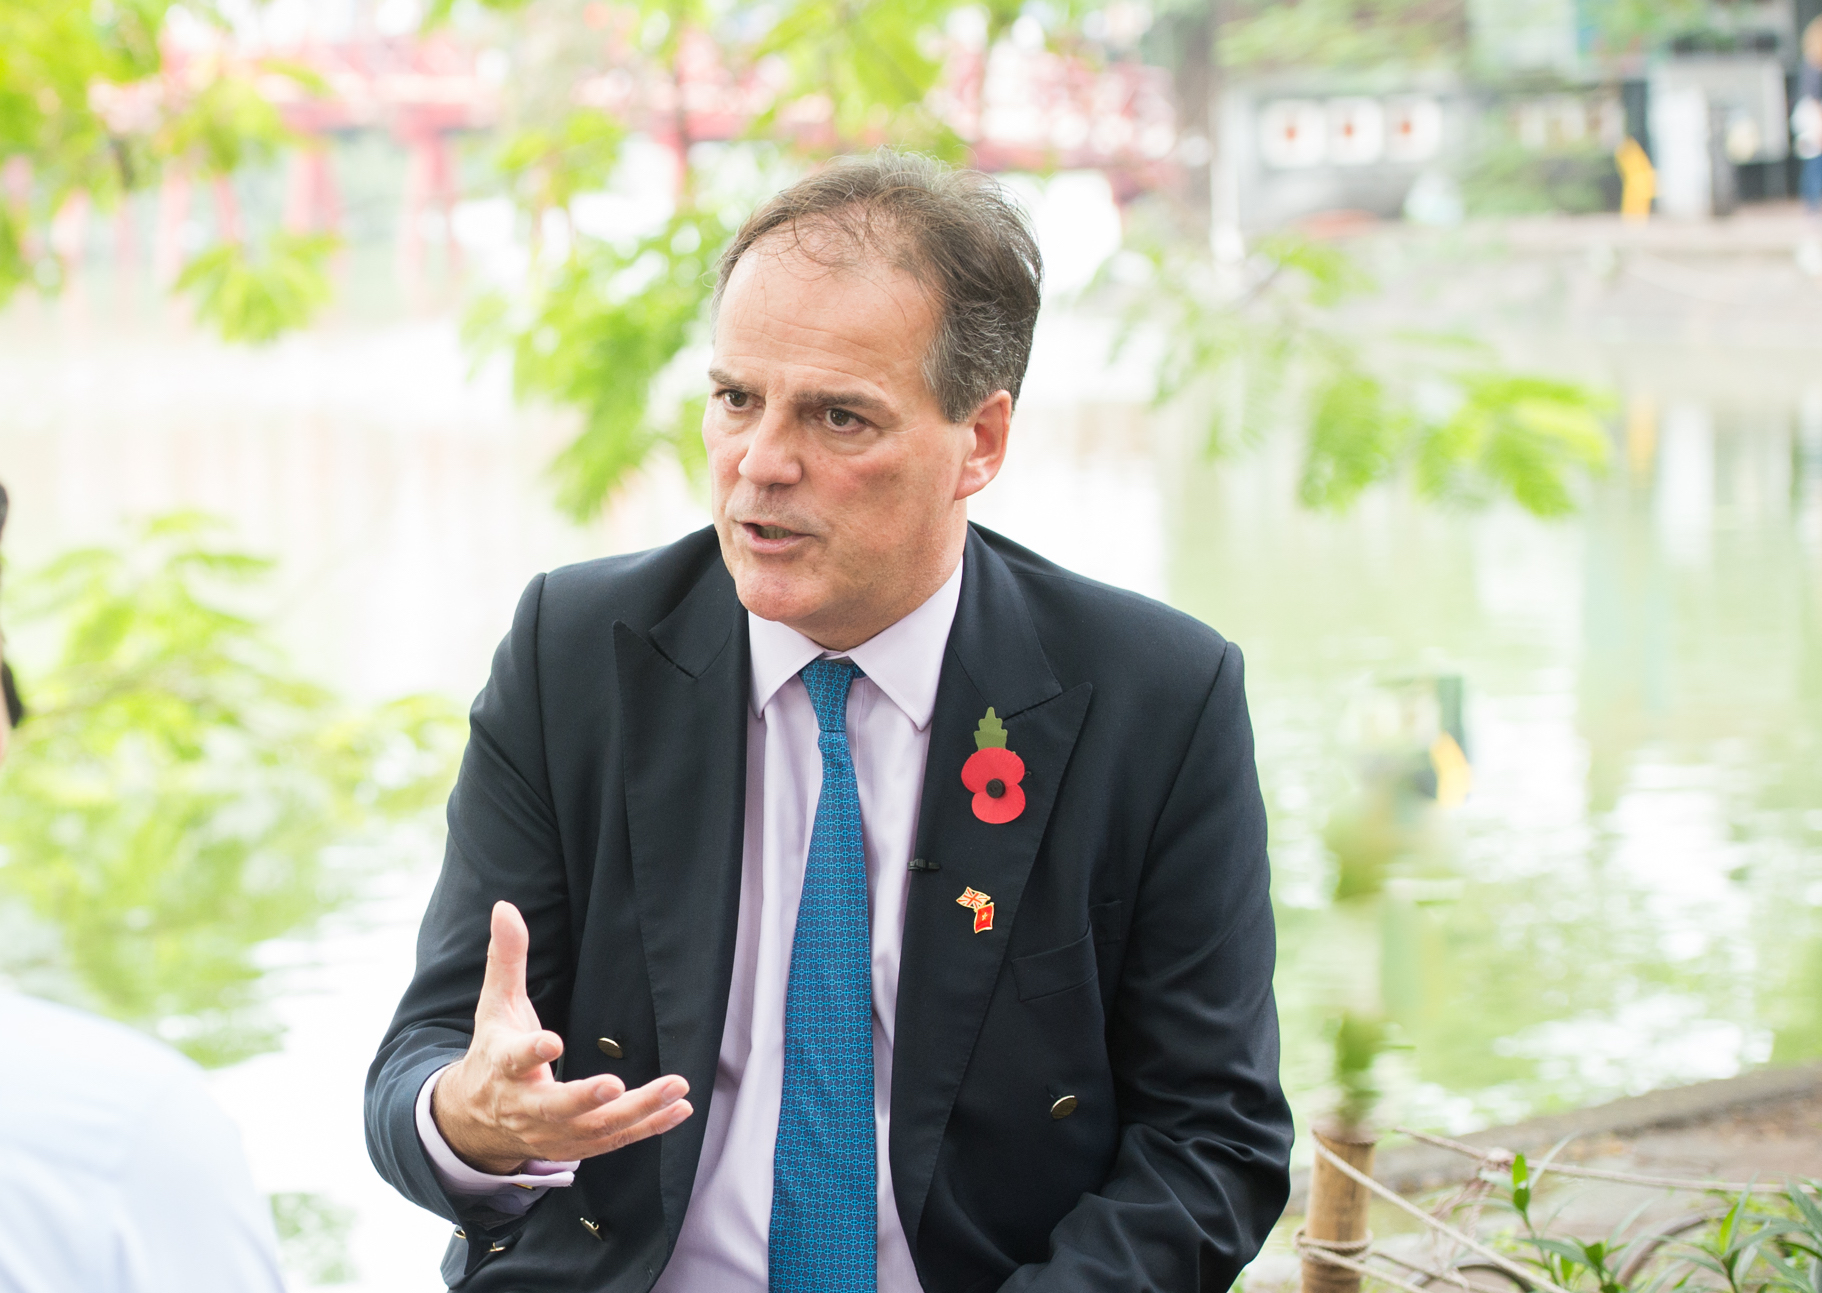 British Minister of State for Asia and the Pacific Mark Field